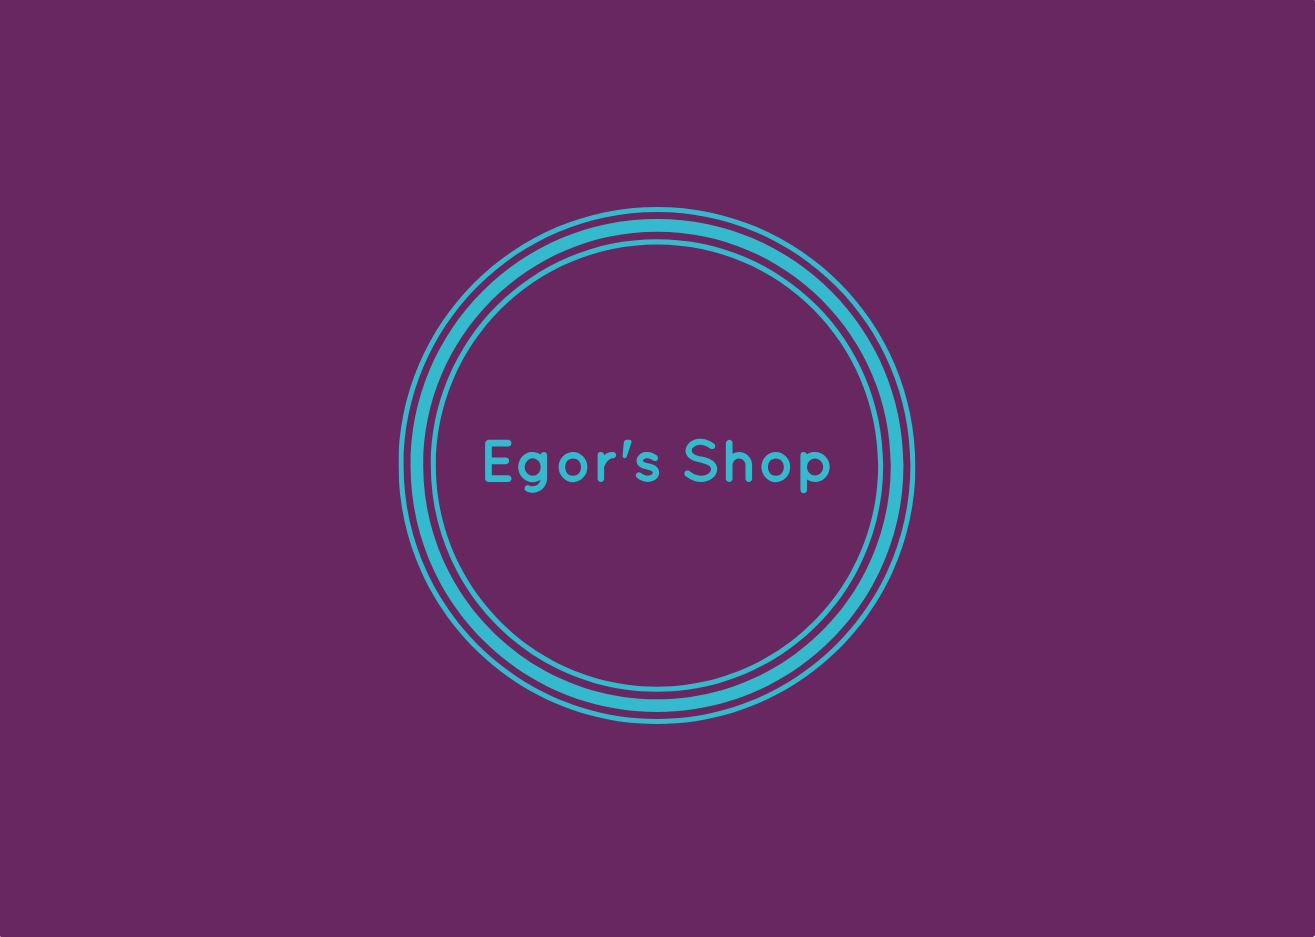 Egor's Shop Logo